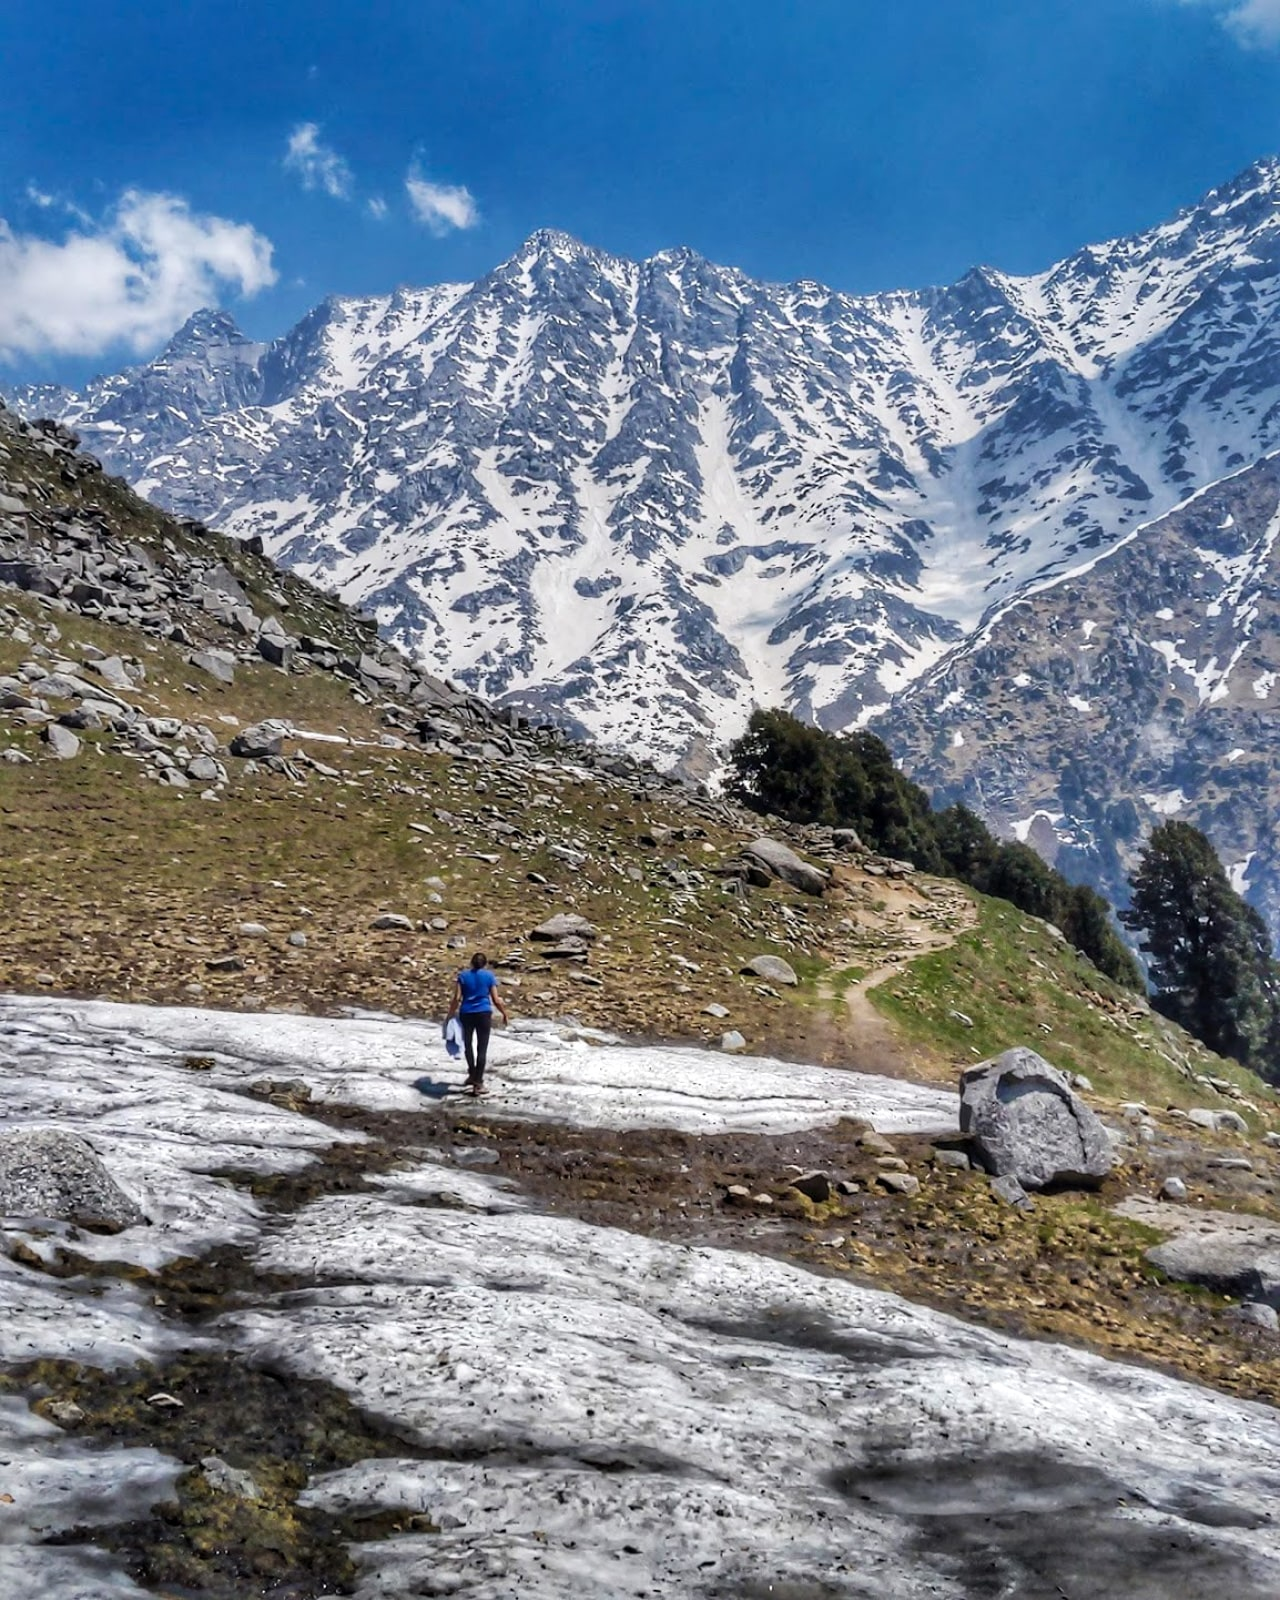 Solo female traveler walking in the snow-capped Dhauladar Mountains in India